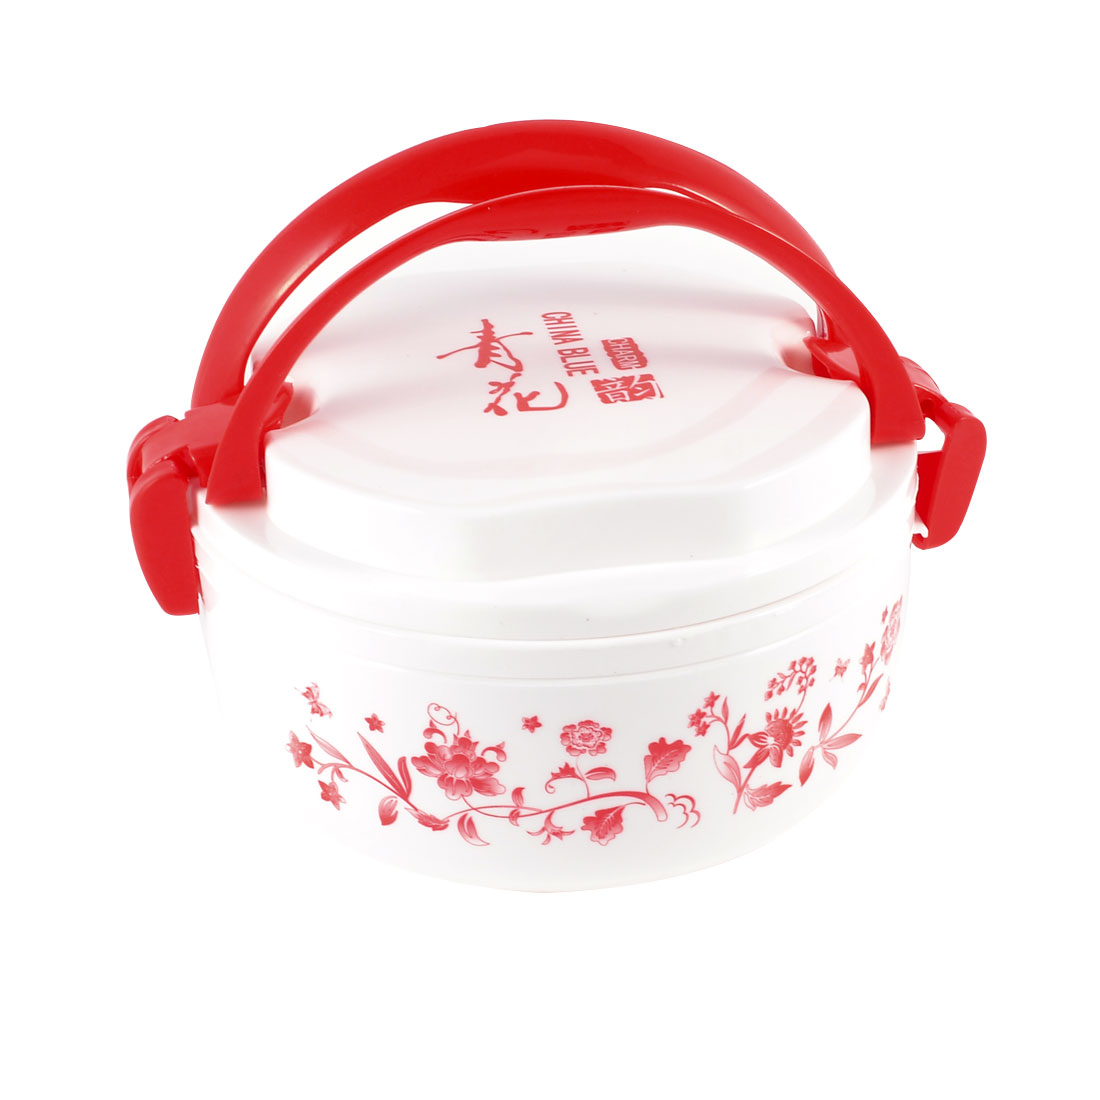 Red White Handheld Flowers Pattern 2 Layer Plastic Food Dish Container Lunch Box w Spoon